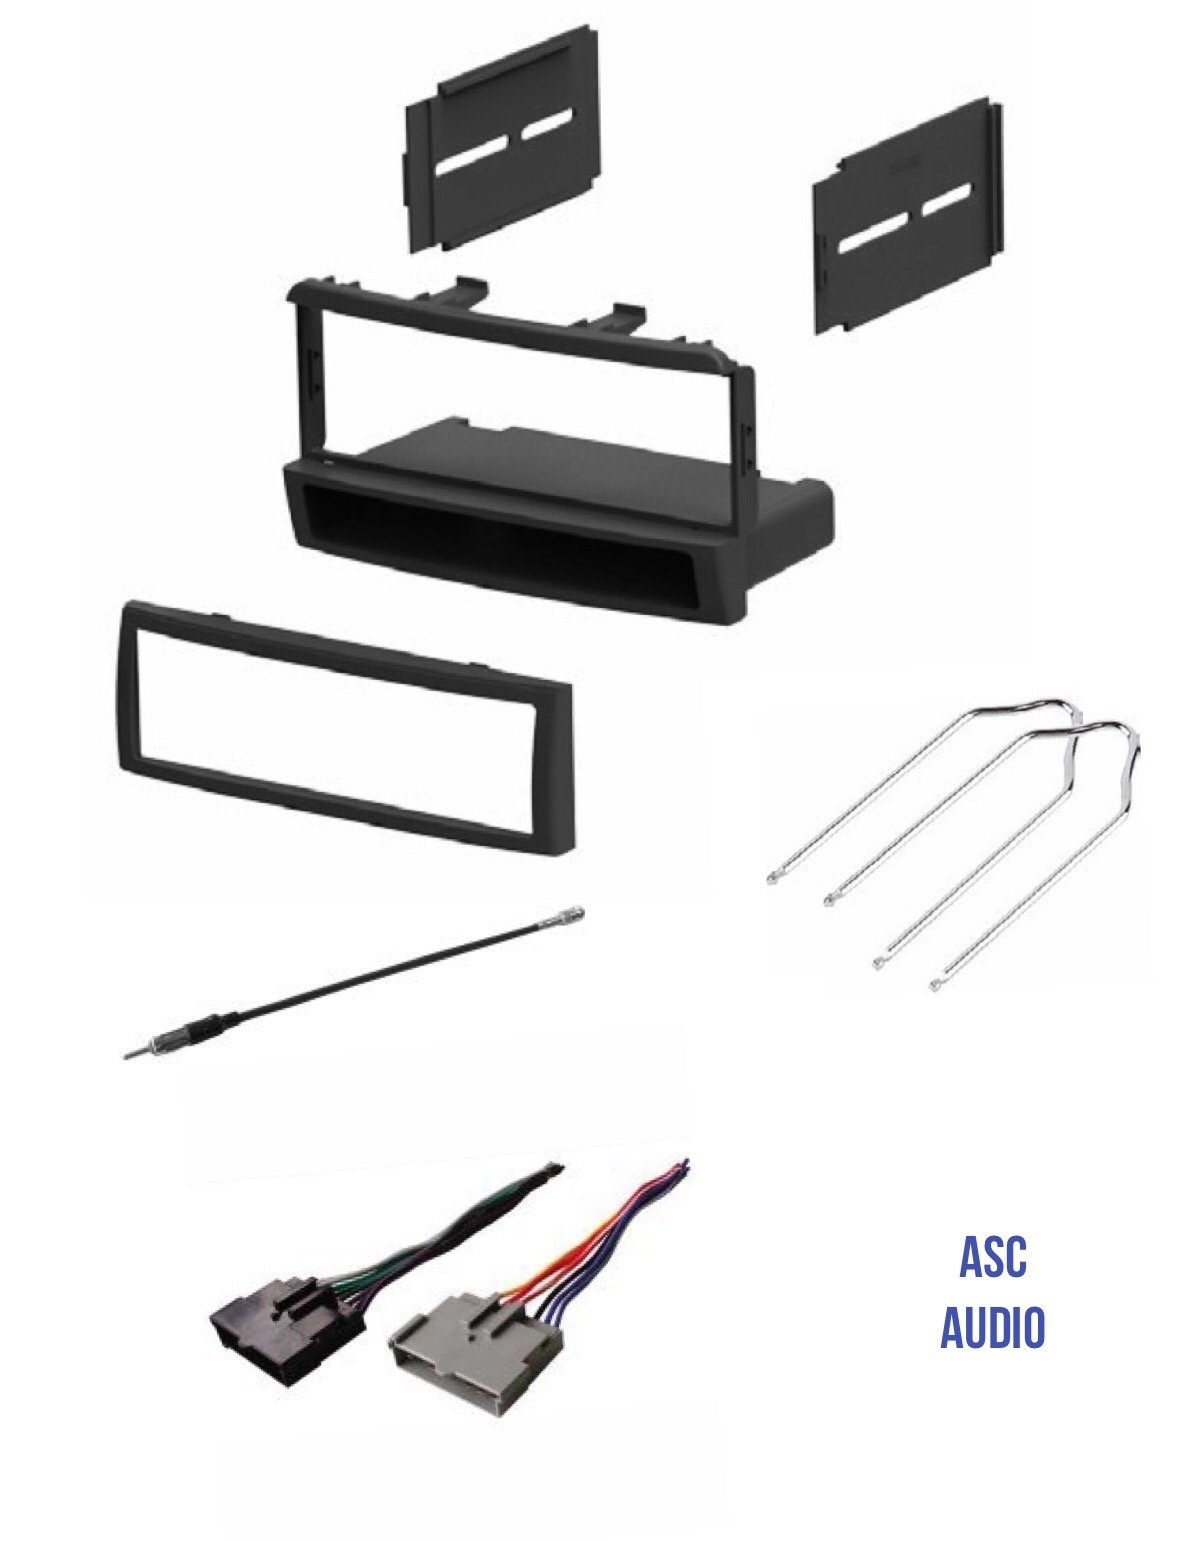 ASC Car Stereo Dash Kit, Wire Harness, Antenna Adapter, and Radio Tool for Installing a Single Din Radio for some 2000 - 2004 Ford Focus, 1999 - 2000 Mercury Cougar